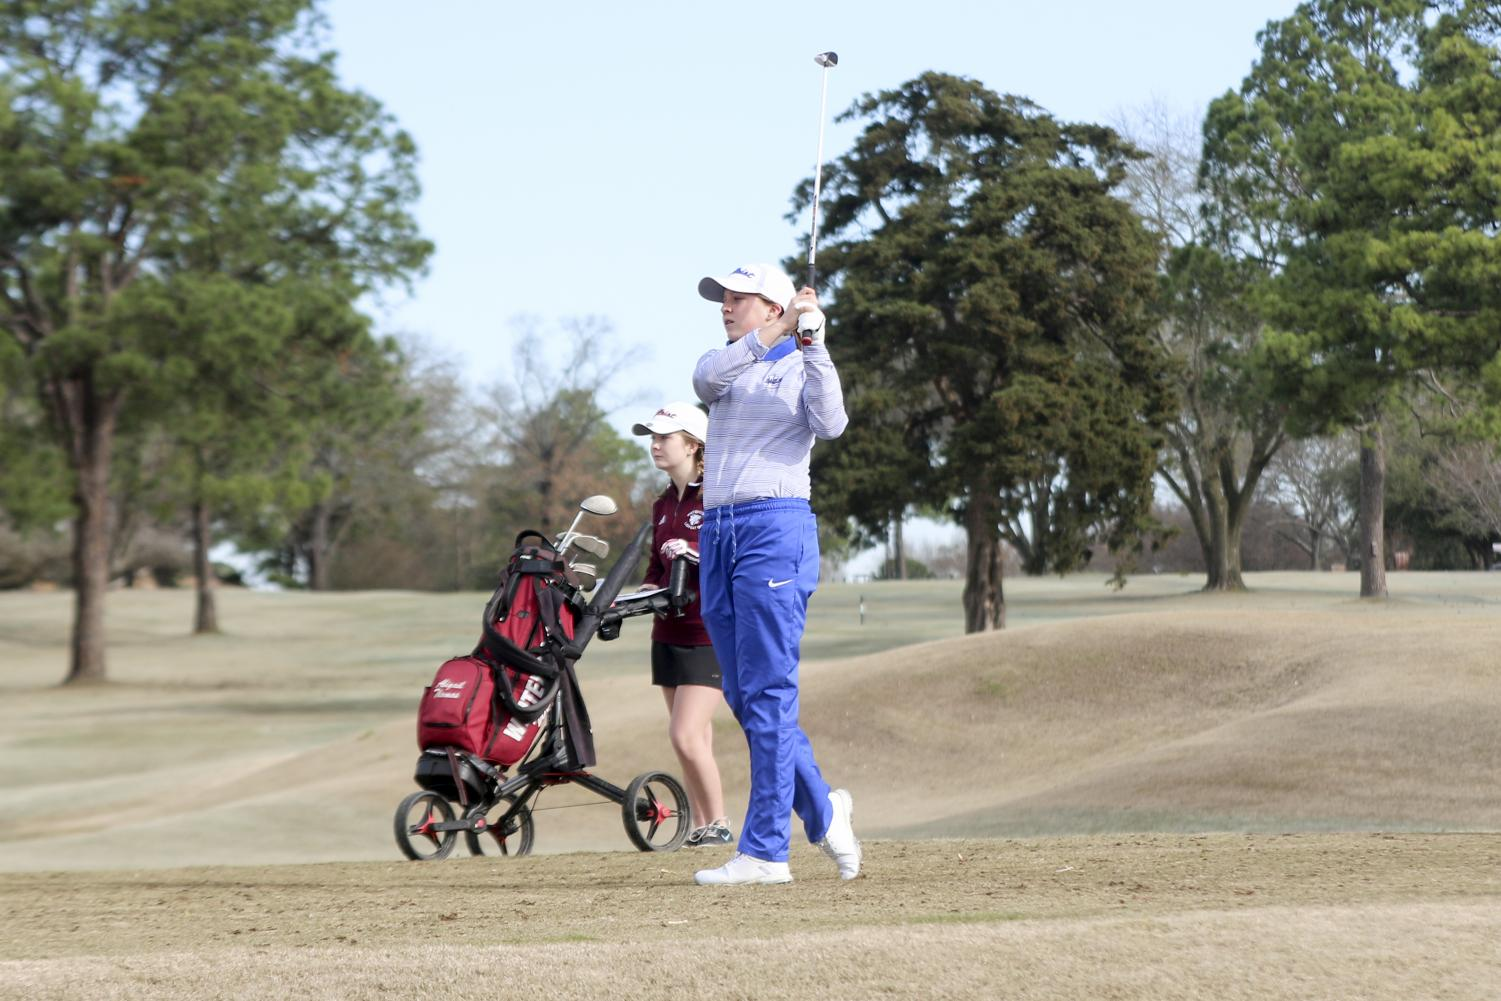 Freshman+Julee+King+swings+her+club+and+watches+the+ball.+This+was+her+fourth+tournament+she+competed+in.